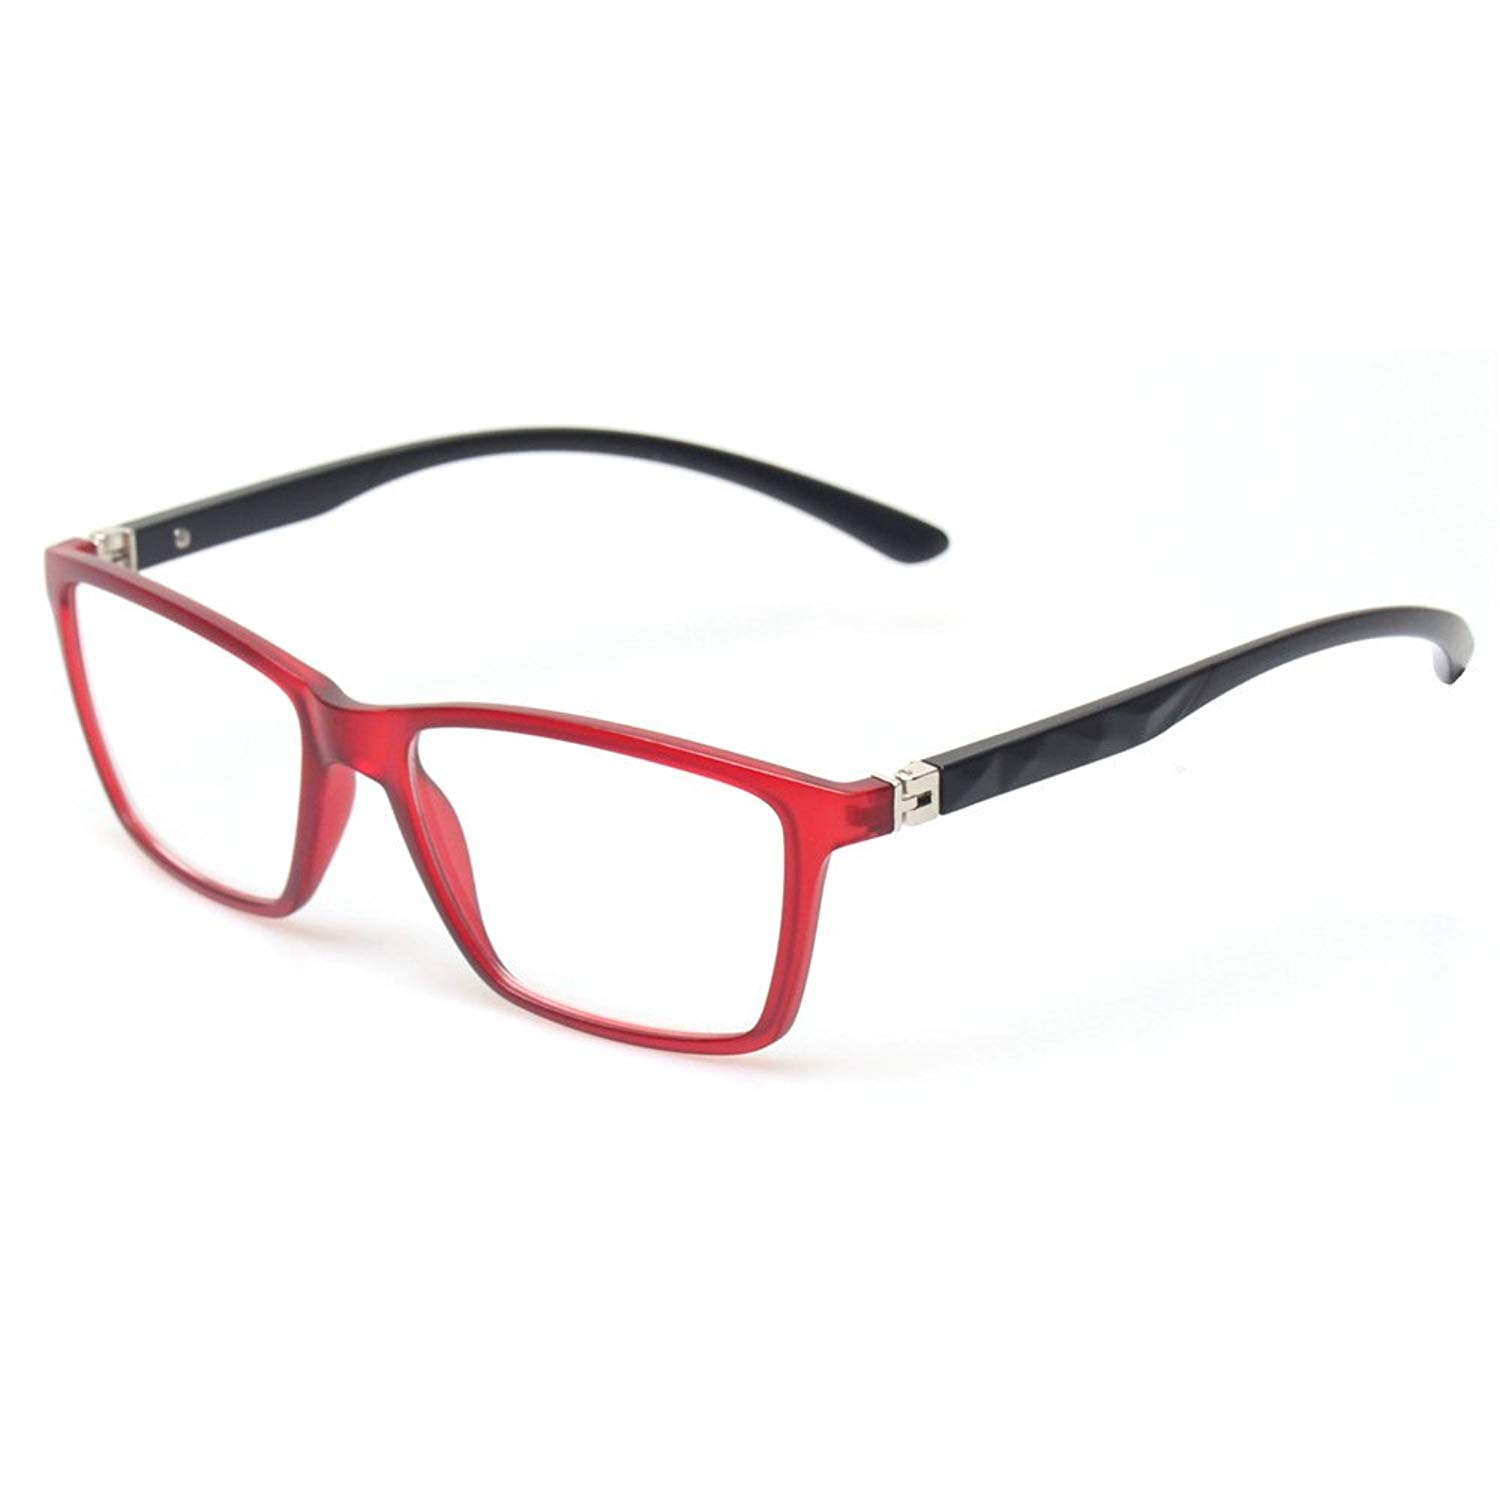 833155671d5e Get Quotations · Reading Glasses Quality Men and Women Large Frame Readers  Fashion Glasses for Reading